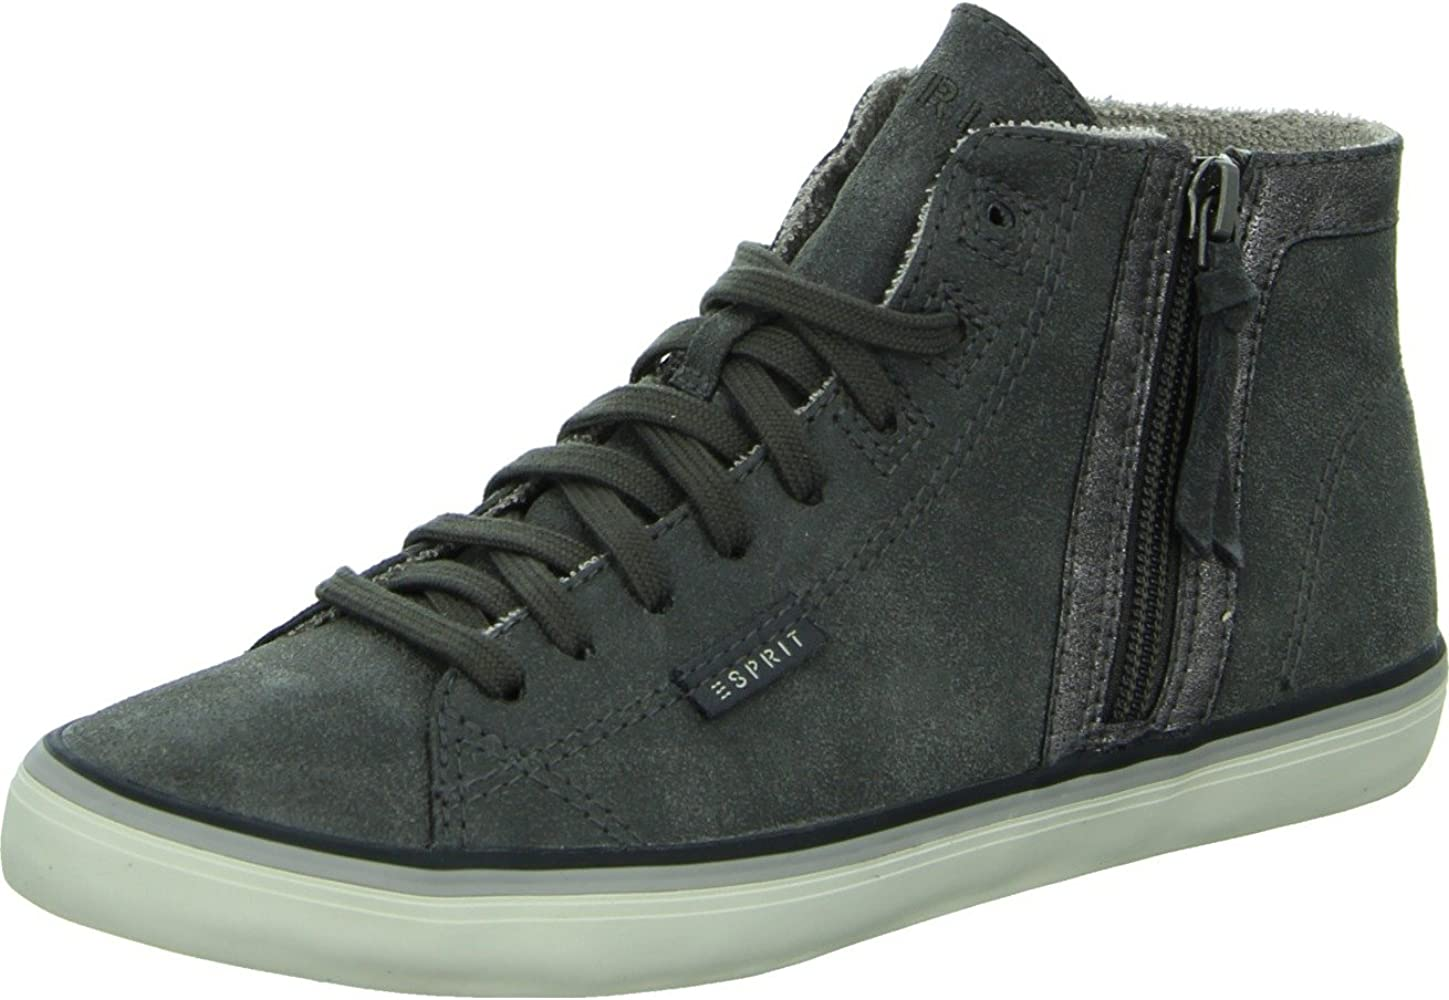 in stock quality super specials ESPRIT Women's Venus Zip Low-Top Sneakers Grey Size: 37 EU ...